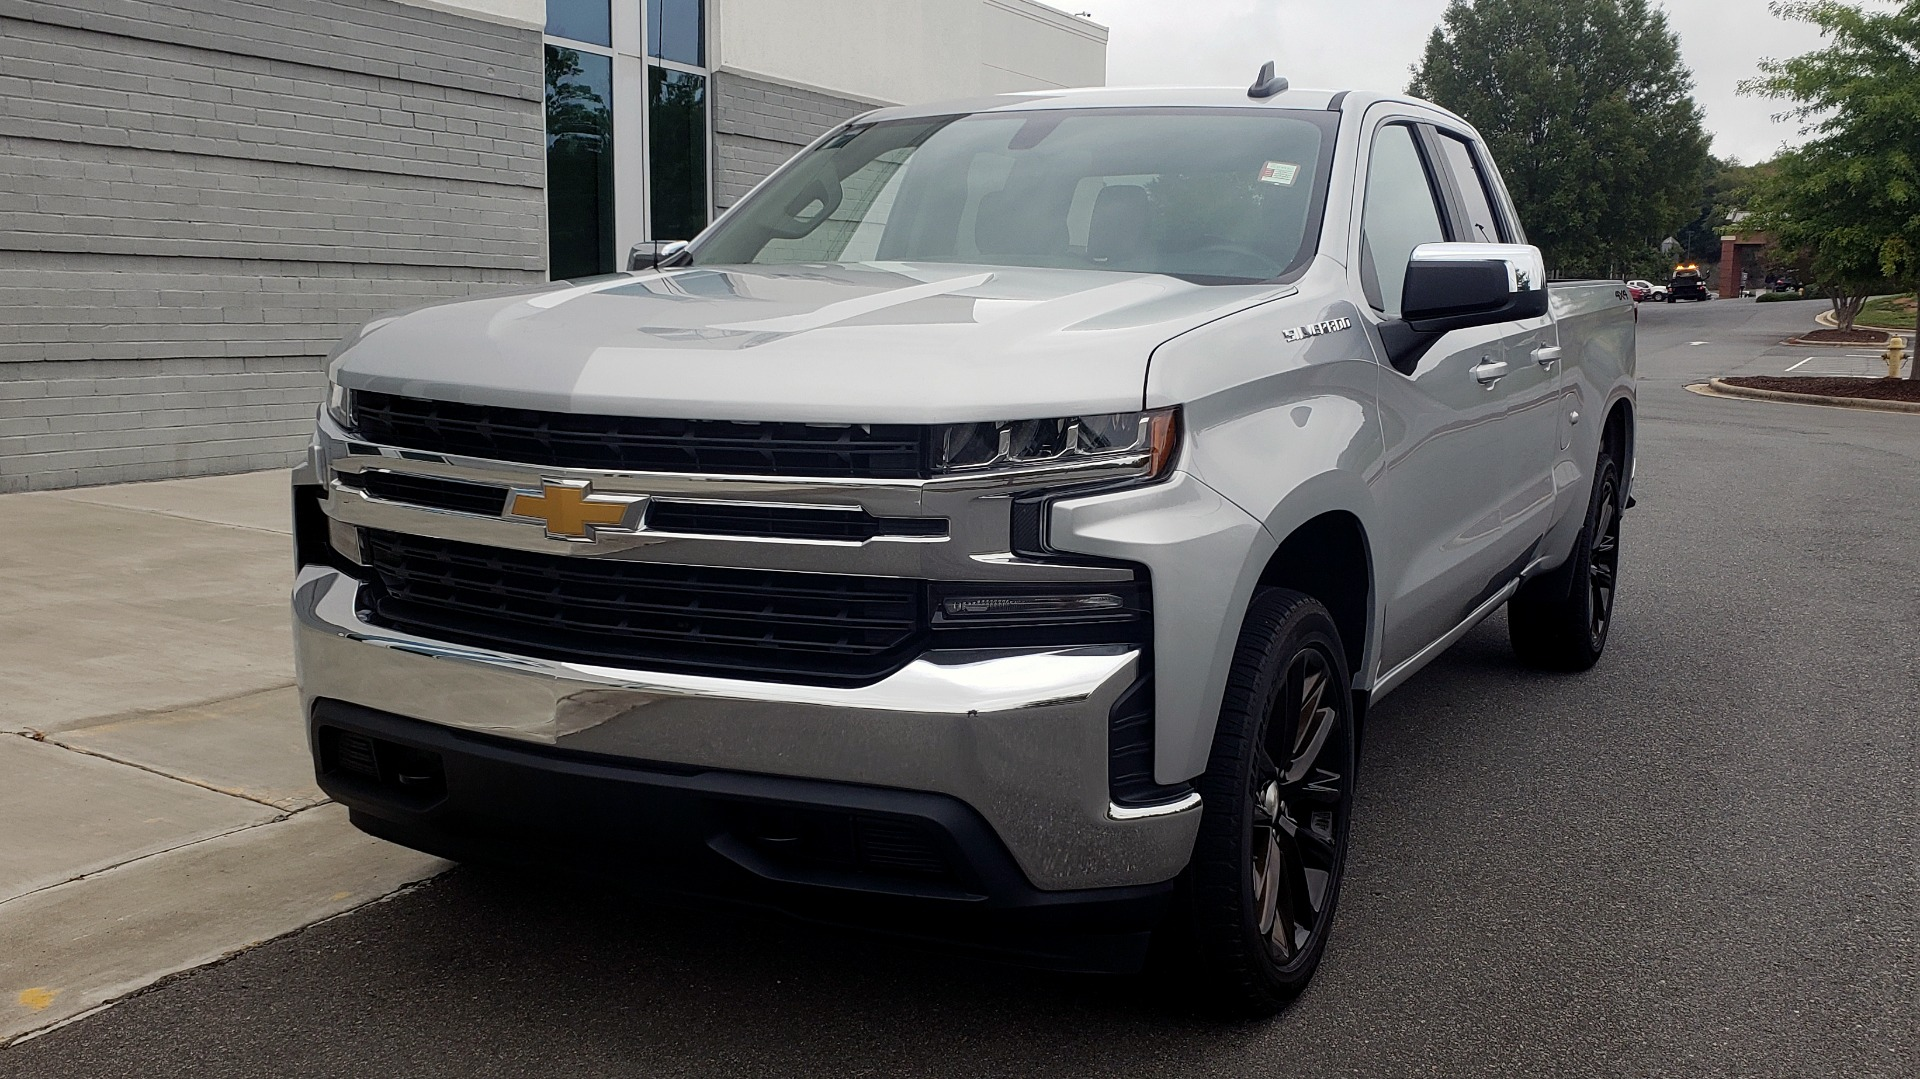 Used 2020 Chevrolet SILVERADO 1500 LT 4WD DOUBLECAB 147 WB / 5.3L V8 / BEDLINER / REARVIEW for sale $41,995 at Formula Imports in Charlotte NC 28227 2